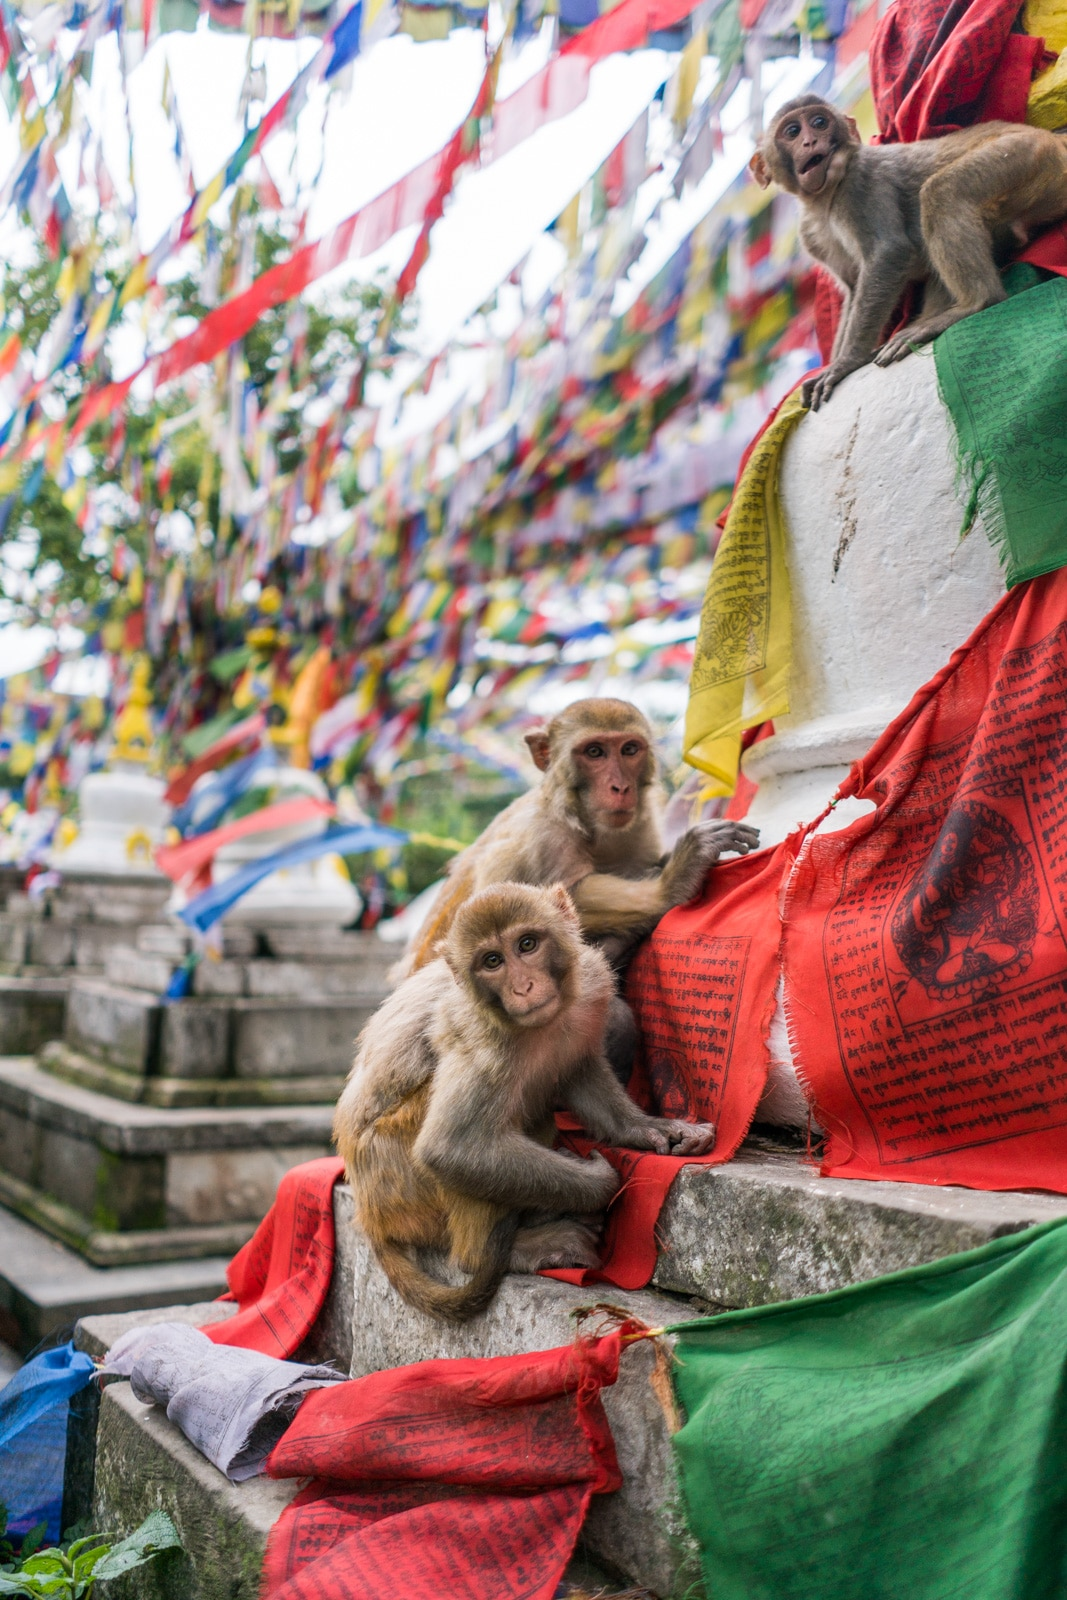 Two rhesus monkeys hanging out on prayer flags at the Buddhist Swayambhunath Stupa in Kathmandu, Nepal, more commonly known as the Monkey Temple. A must-see in Kathmandu for travelers!